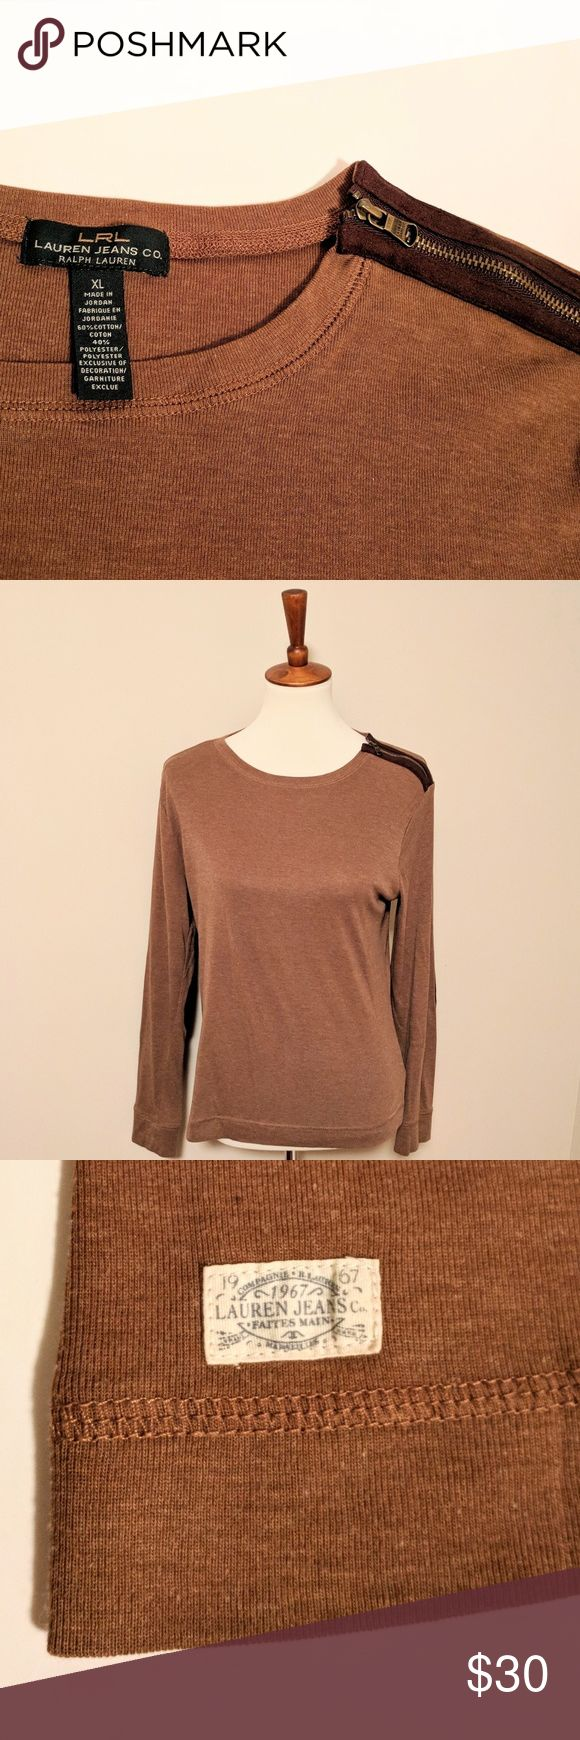 NEW!  Ralph Lauren Long Sleeve with Suede Elbow XL Ralph Lauren light brown long sleeve shirt with dark brown suede elbows and shoulder zipper.  Well cared for and in excellent condition.  - XL size - True RL fitting - Suede elbows - zipper closure at shoulder - Strong stitching with RL logo on front at hemline Ralph Lauren Tops Blouses